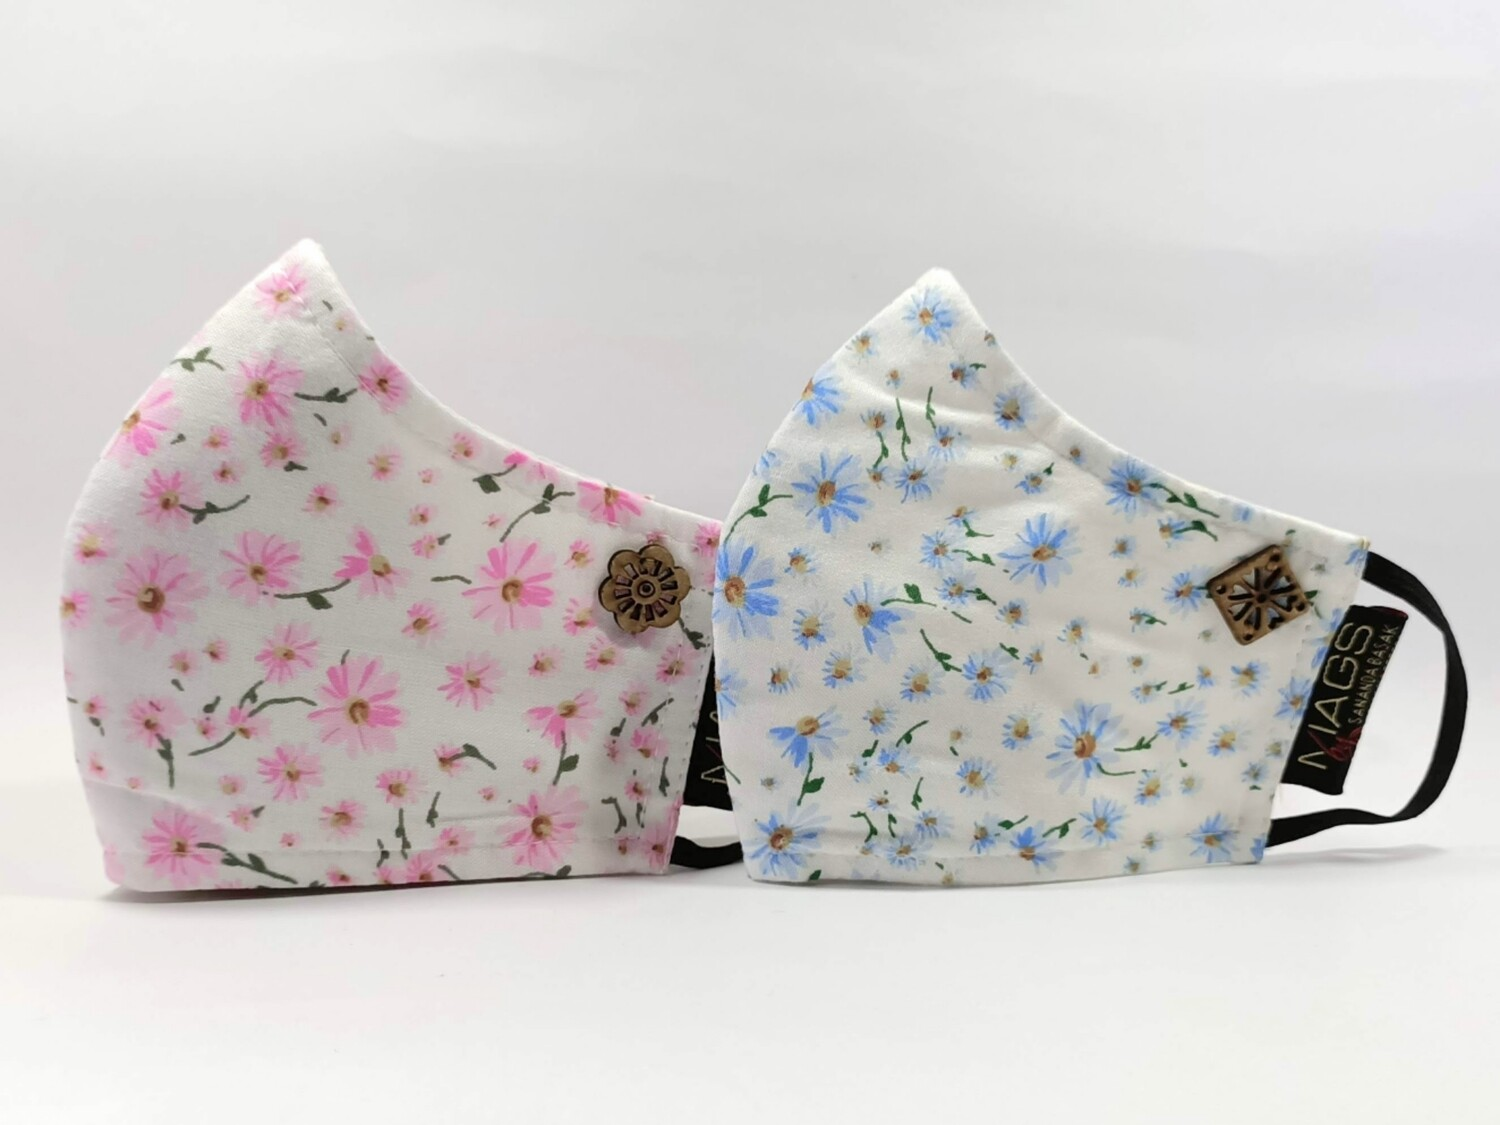 2 Set Combo - Pink And Blue Floral Printed Cotton